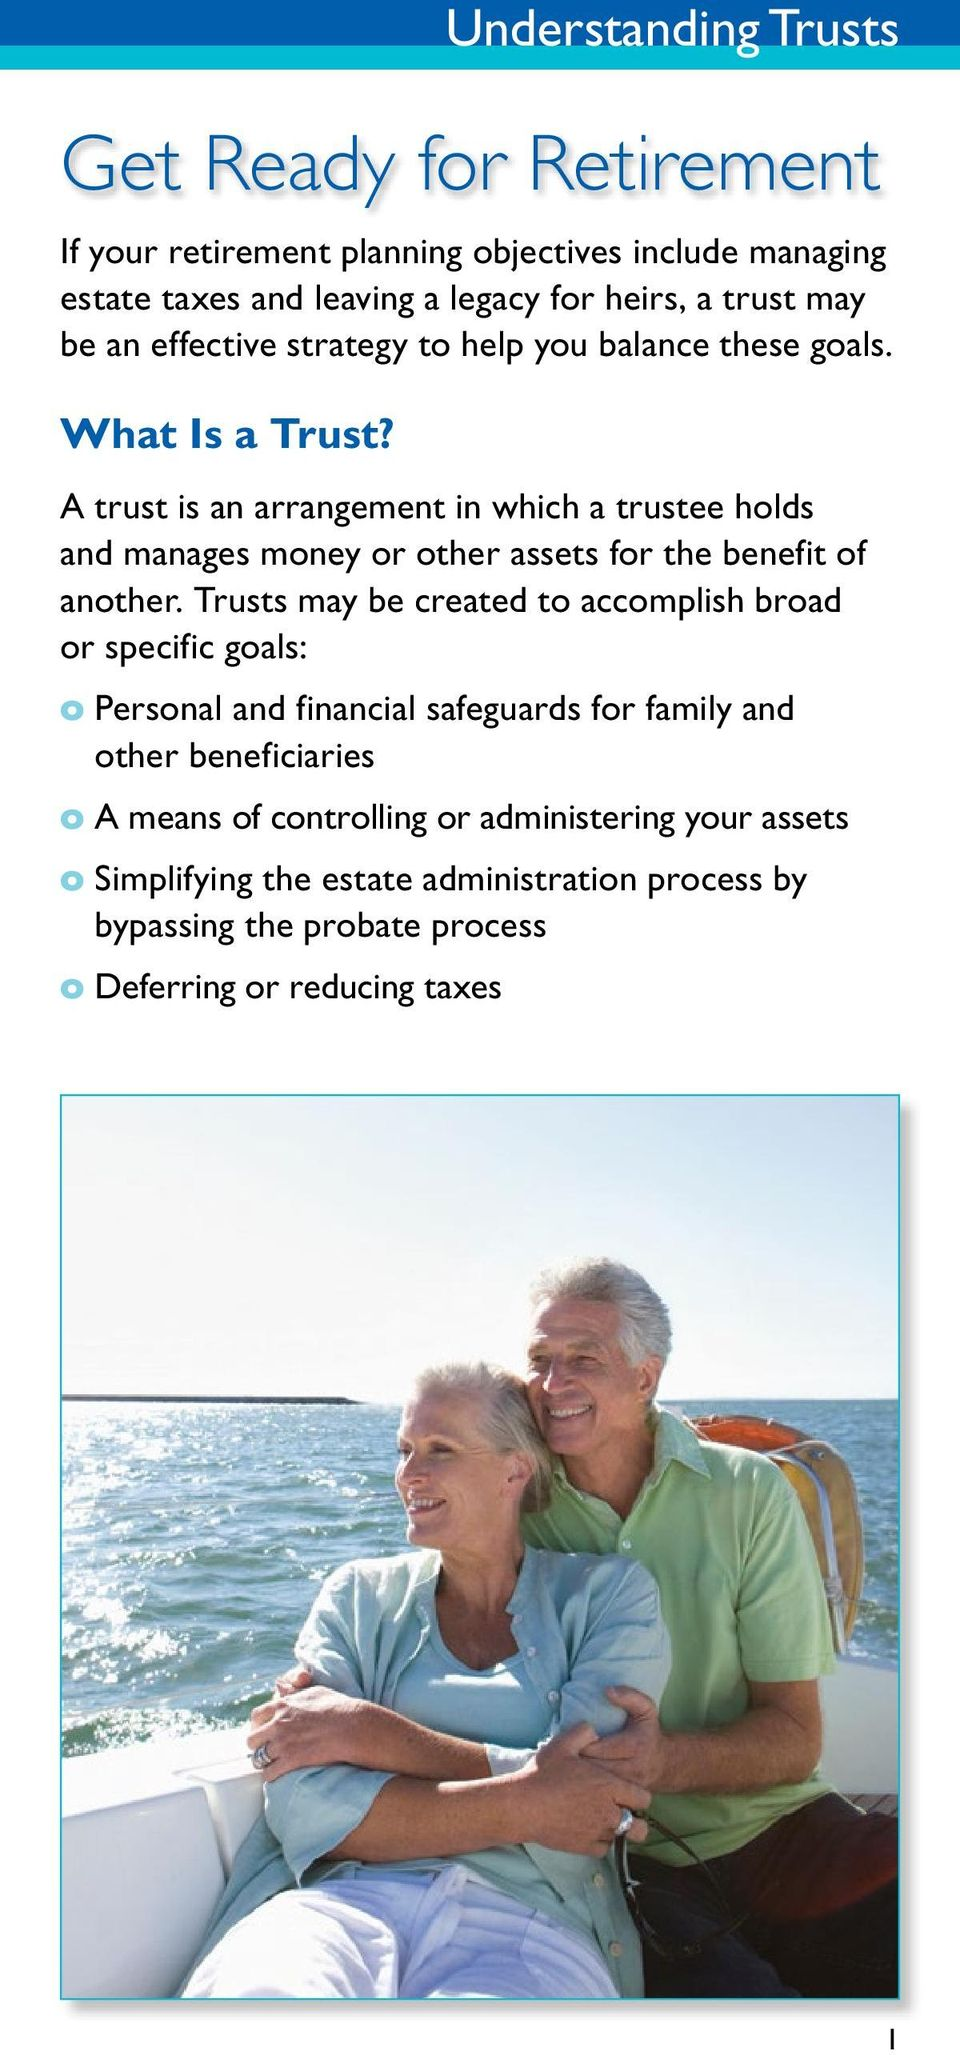 A trust is an arrangement in which a trustee holds and manages money or other assets for the benefit of another.